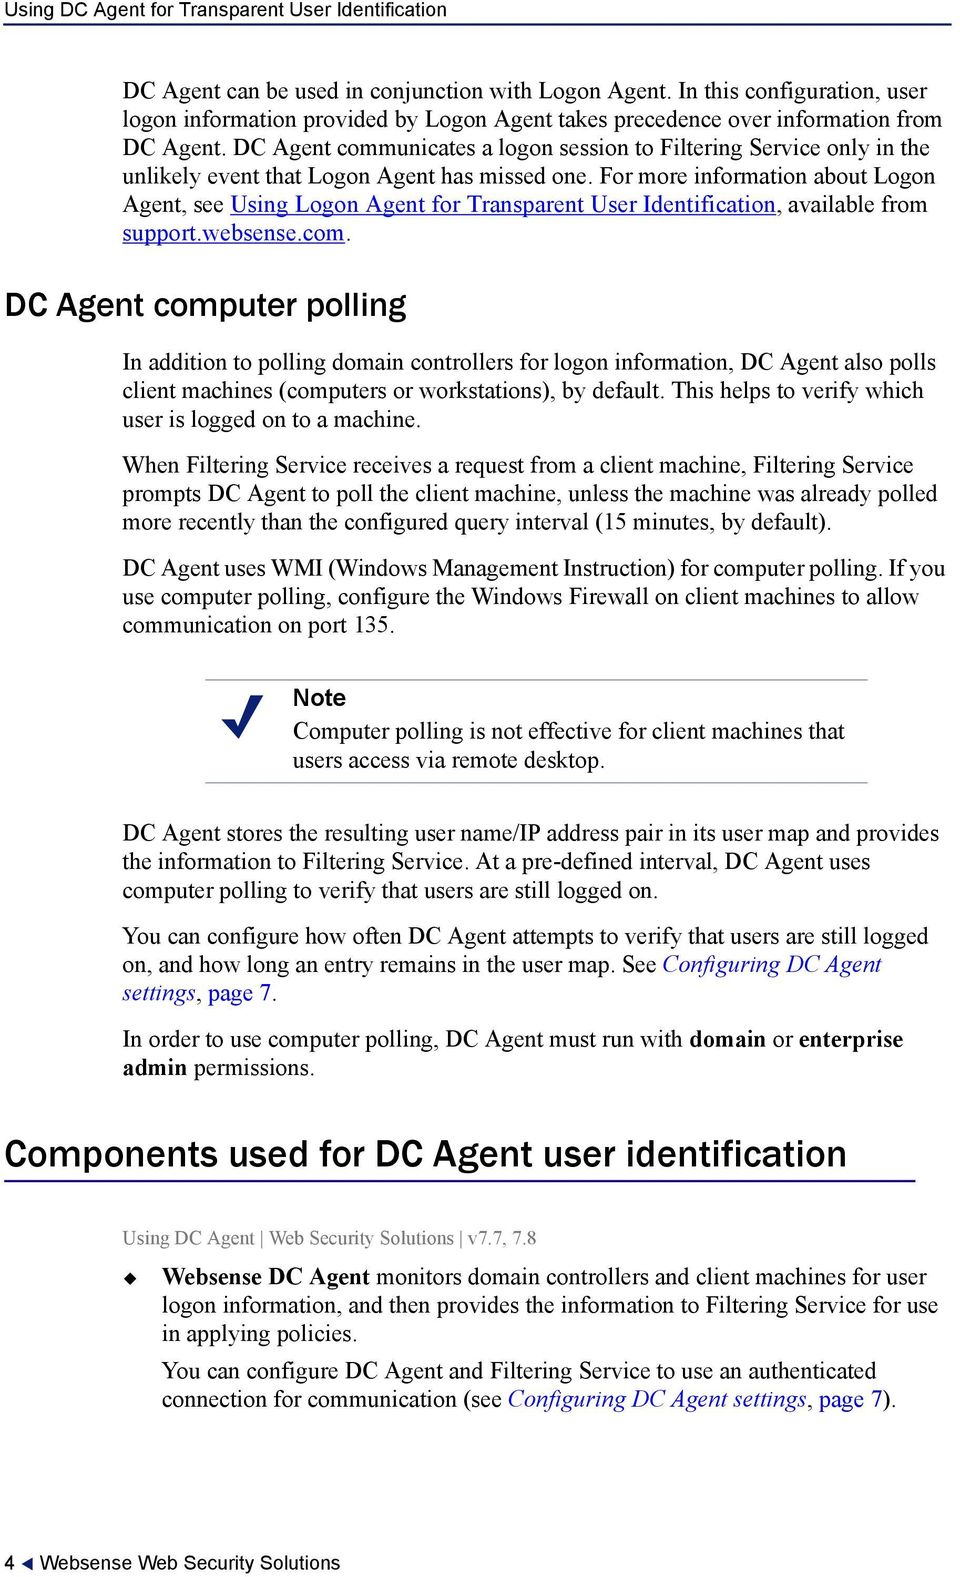 For more information about Logon Agent, see Using Logon Agent for Transparent User Identification, available from support.websense.com.